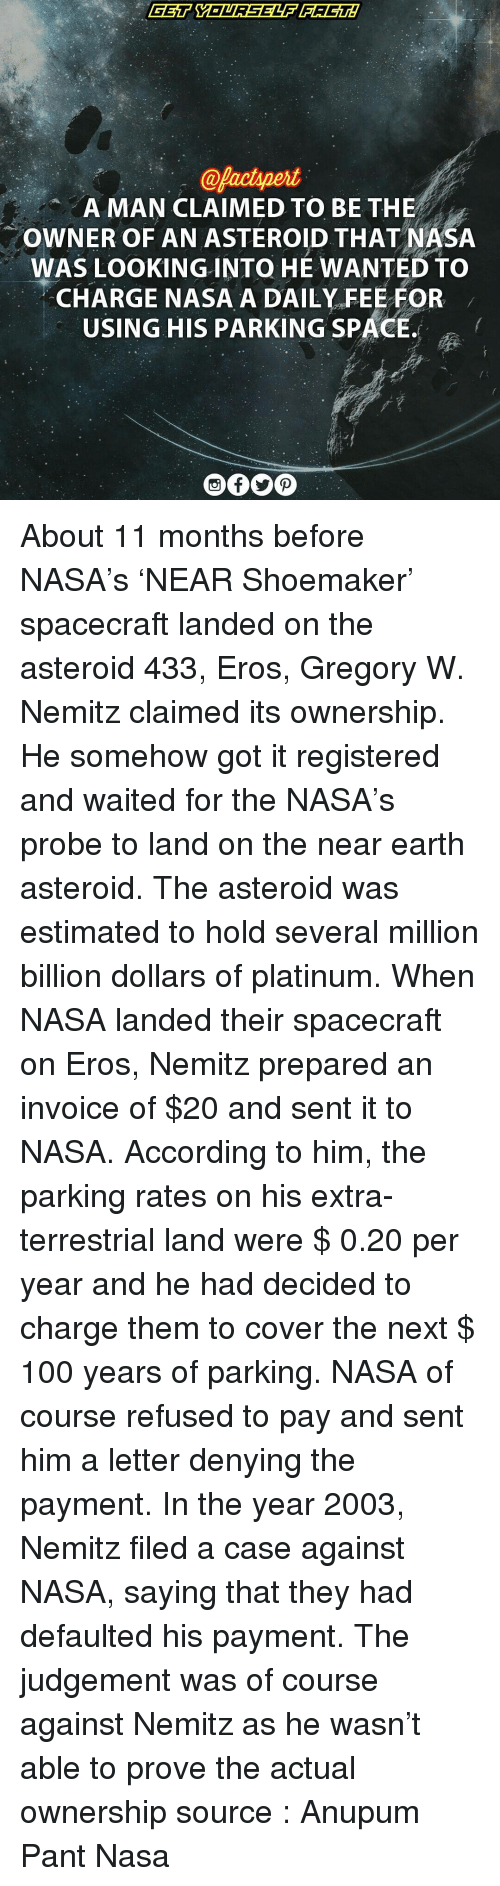 invoice: @factpert  A MAN CLAIMED TO BE THE  owNER OF AN ASTEROID THATNASA  WAS LOOKING INTO HE WANTED TO  CHARGE NASA A DAILY FEE FOR  USING HIS PARKING SPACE. About 11 months before NASA's 'NEAR Shoemaker' spacecraft landed on the asteroid 433, Eros, Gregory W. Nemitz claimed its ownership. He somehow got it registered and waited for the NASA's probe to land on the near earth asteroid. The asteroid was estimated to hold several million billion dollars of platinum. When NASA landed their spacecraft on Eros, Nemitz prepared an invoice of $20 and sent it to NASA. According to him, the parking rates on his extra-terrestrial land were $ 0.20 per year and he had decided to charge them to cover the next $ 100 years of parking. NASA of course refused to pay and sent him a letter denying the payment. In the year 2003, Nemitz filed a case against NASA, saying that they had defaulted his payment. The judgement was of course against Nemitz as he wasn't able to prove the actual ownership source : Anupum Pant Nasa